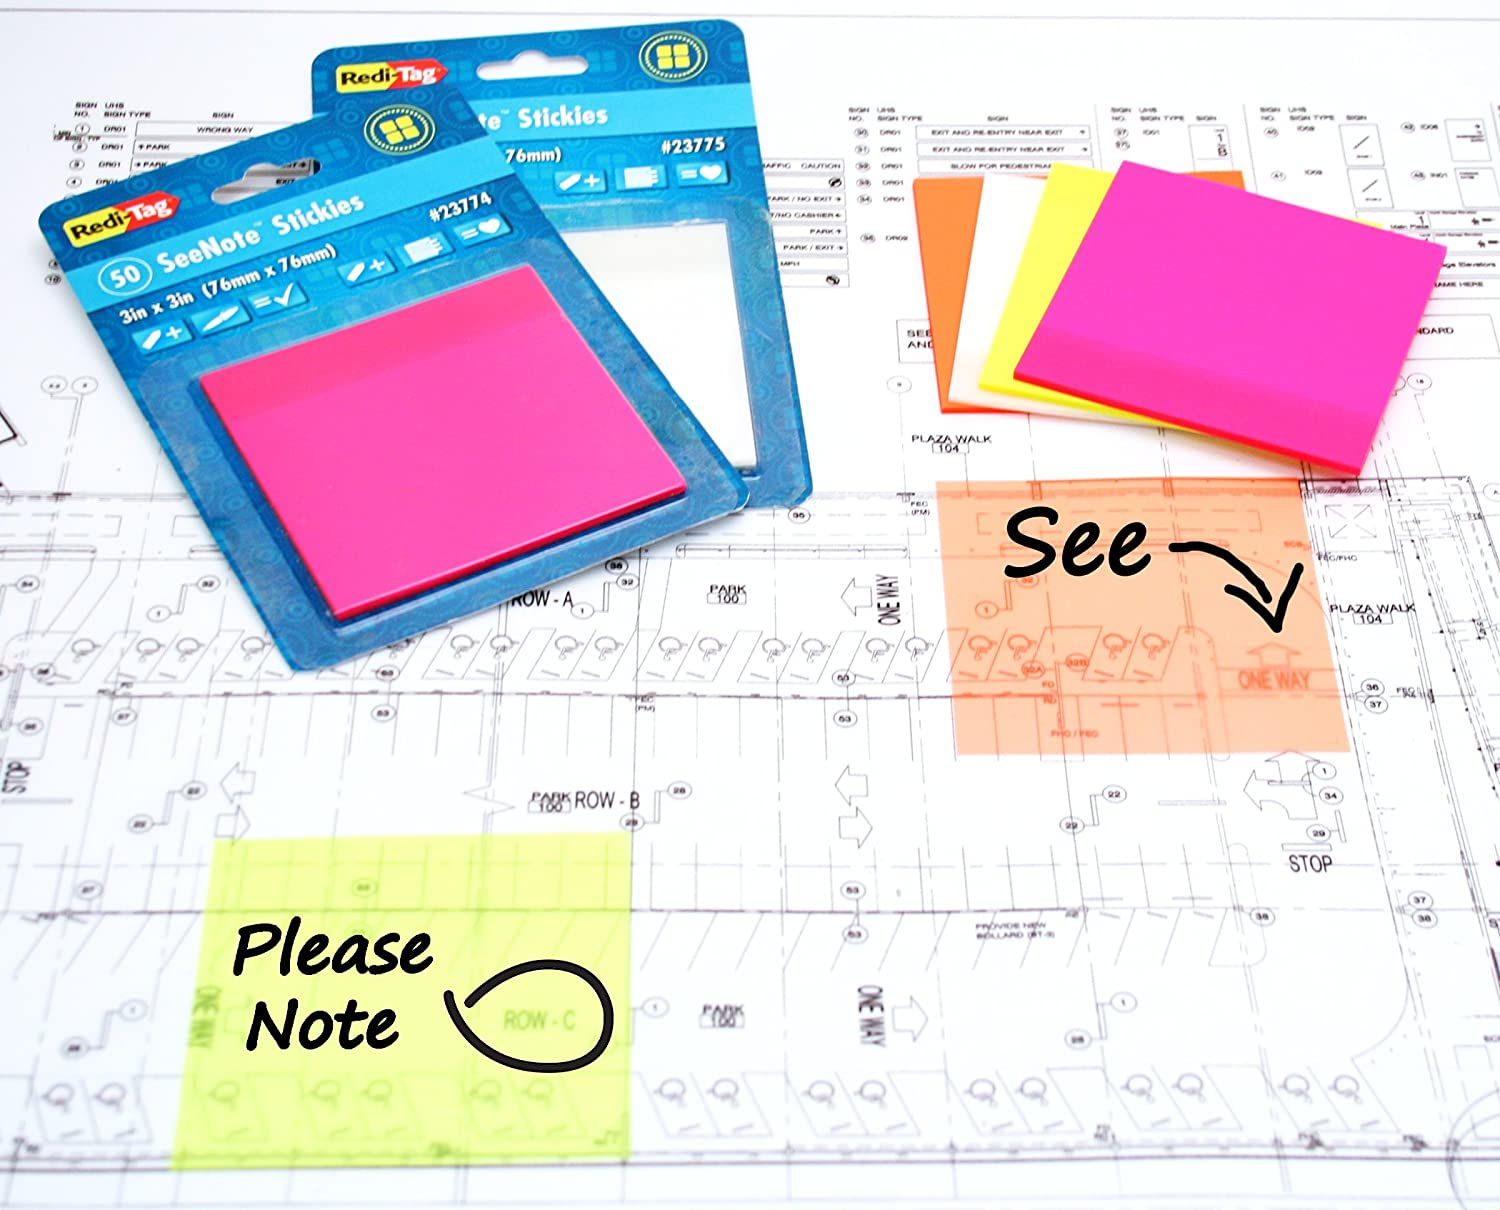 Redi-Tag-SeeNote Stickies Transparent Sticky Notes, 50-Pack, 3 X 3-Inch, Neon Magenta-23774